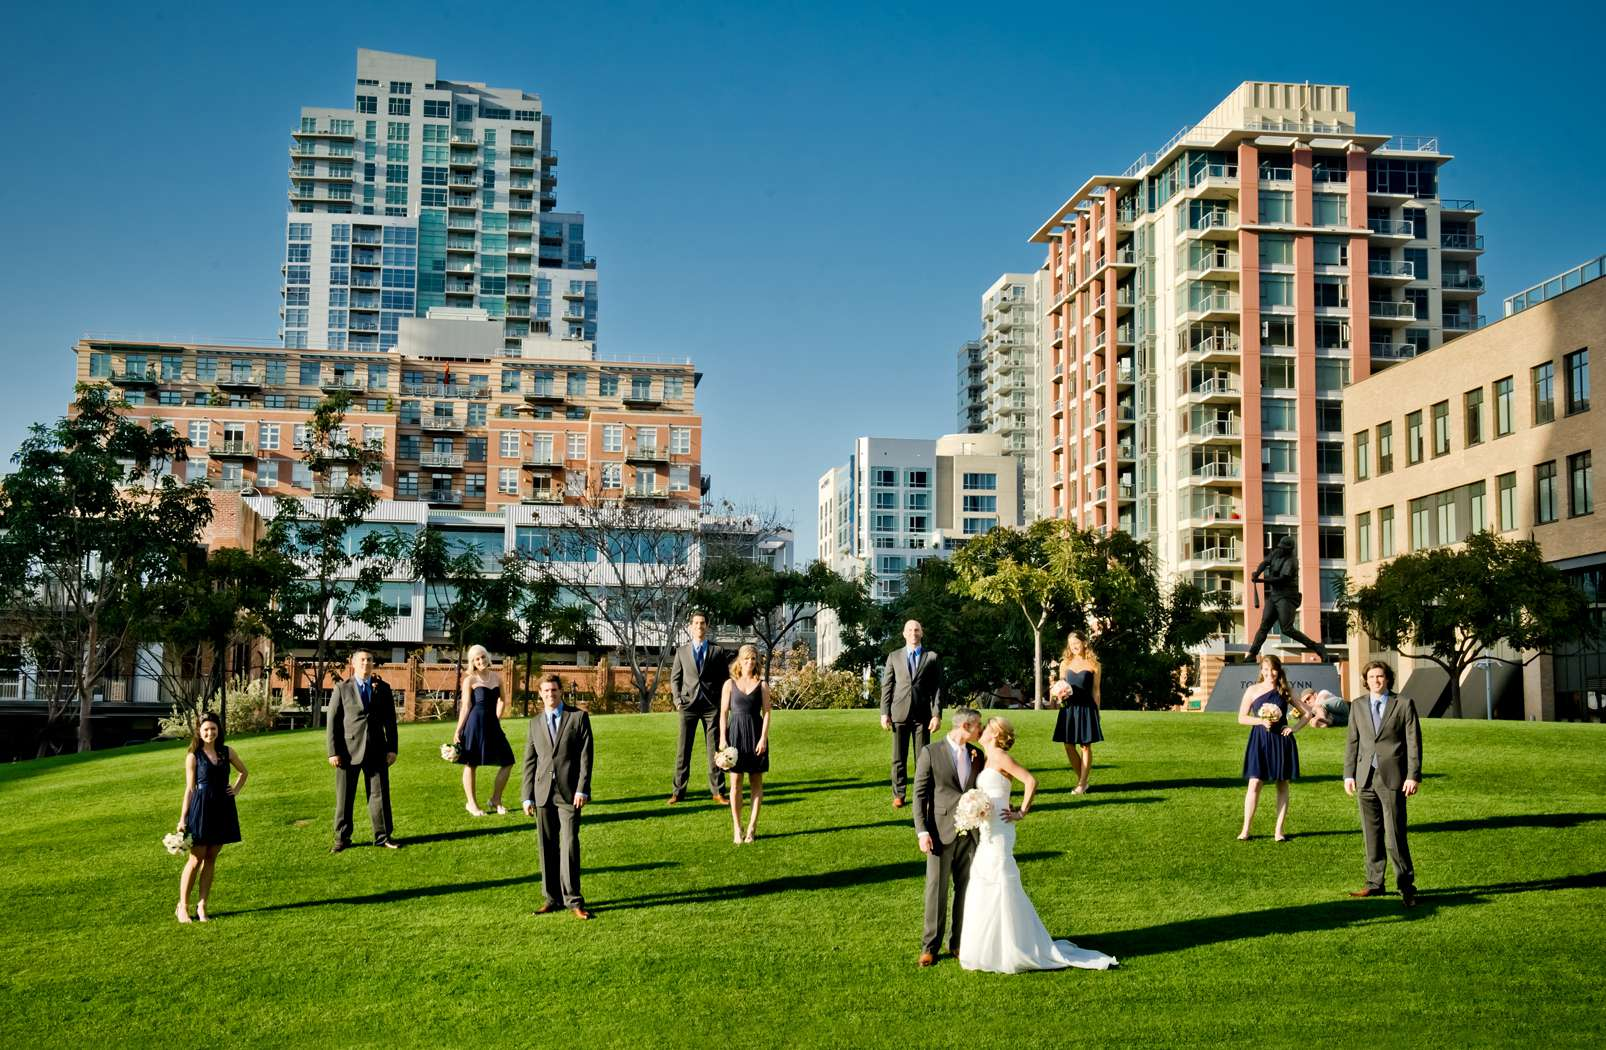 Urban Downtown at Ultimate Skybox Wedding, Chelsea and Frank Wedding Photo #9 by True Photography